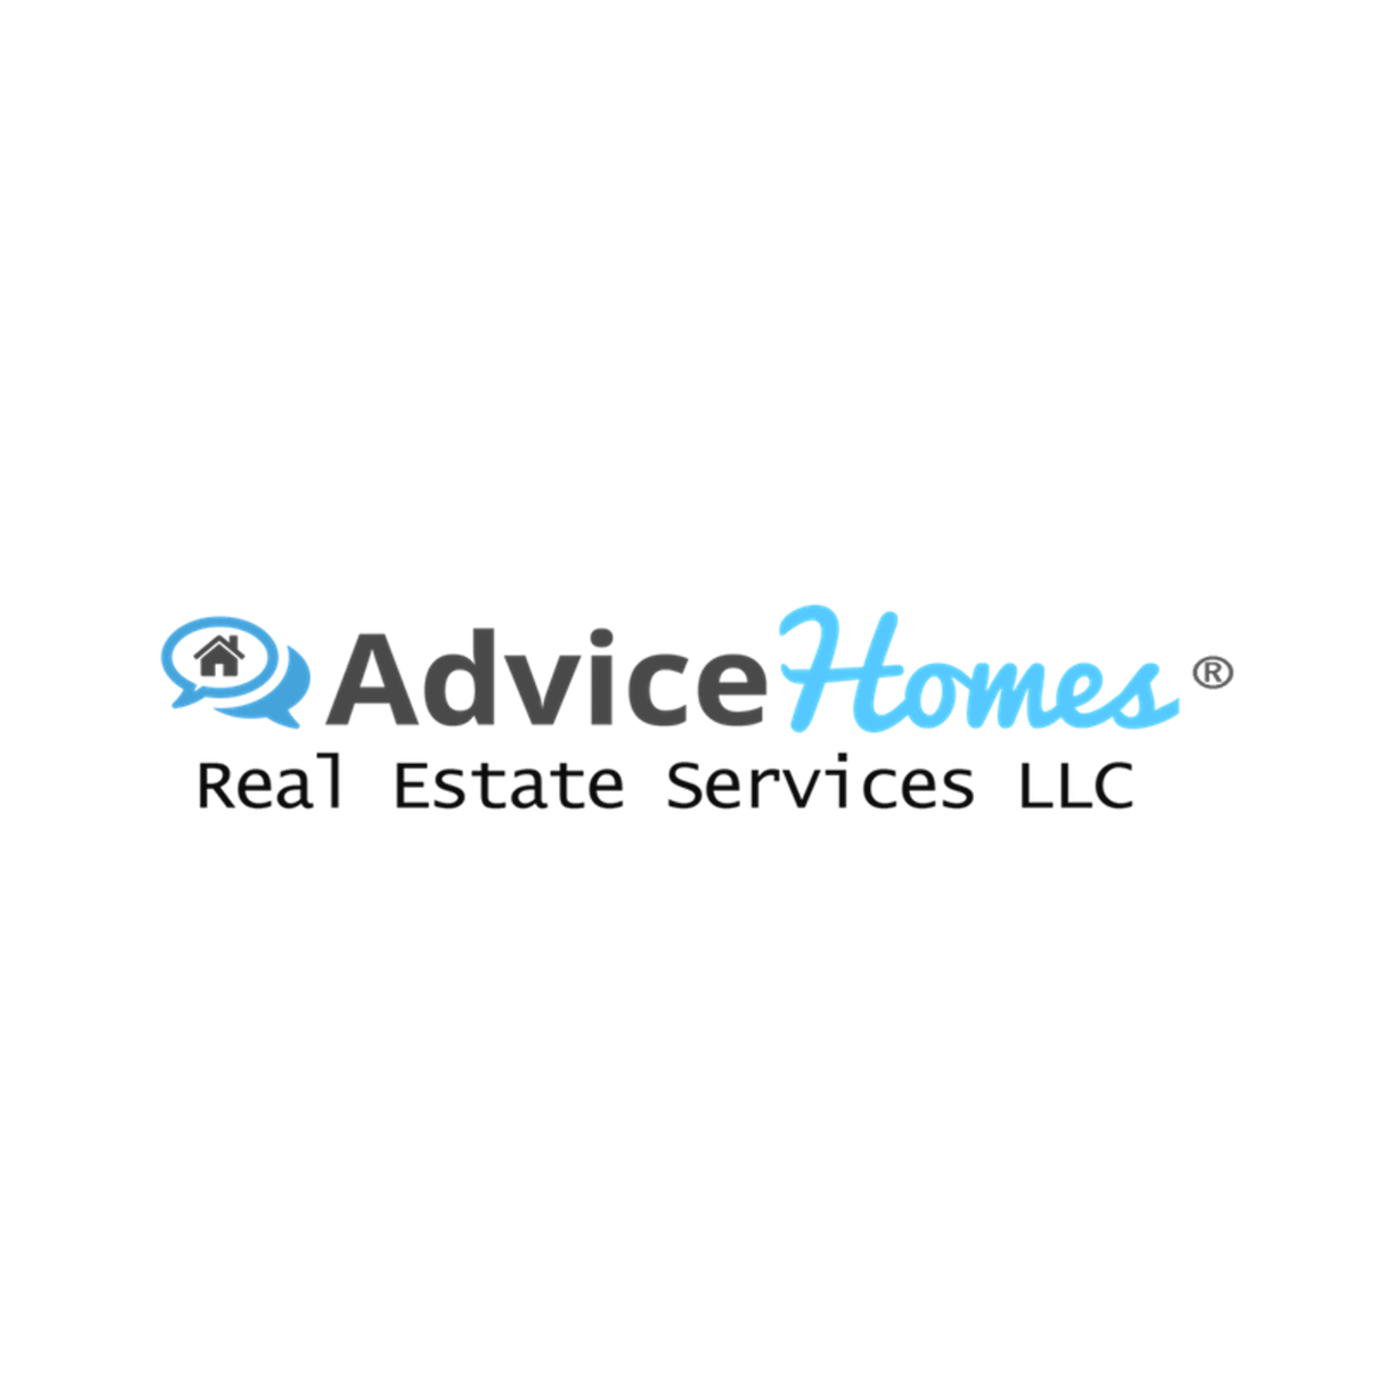 Advice Homes Real Estate Services LLC